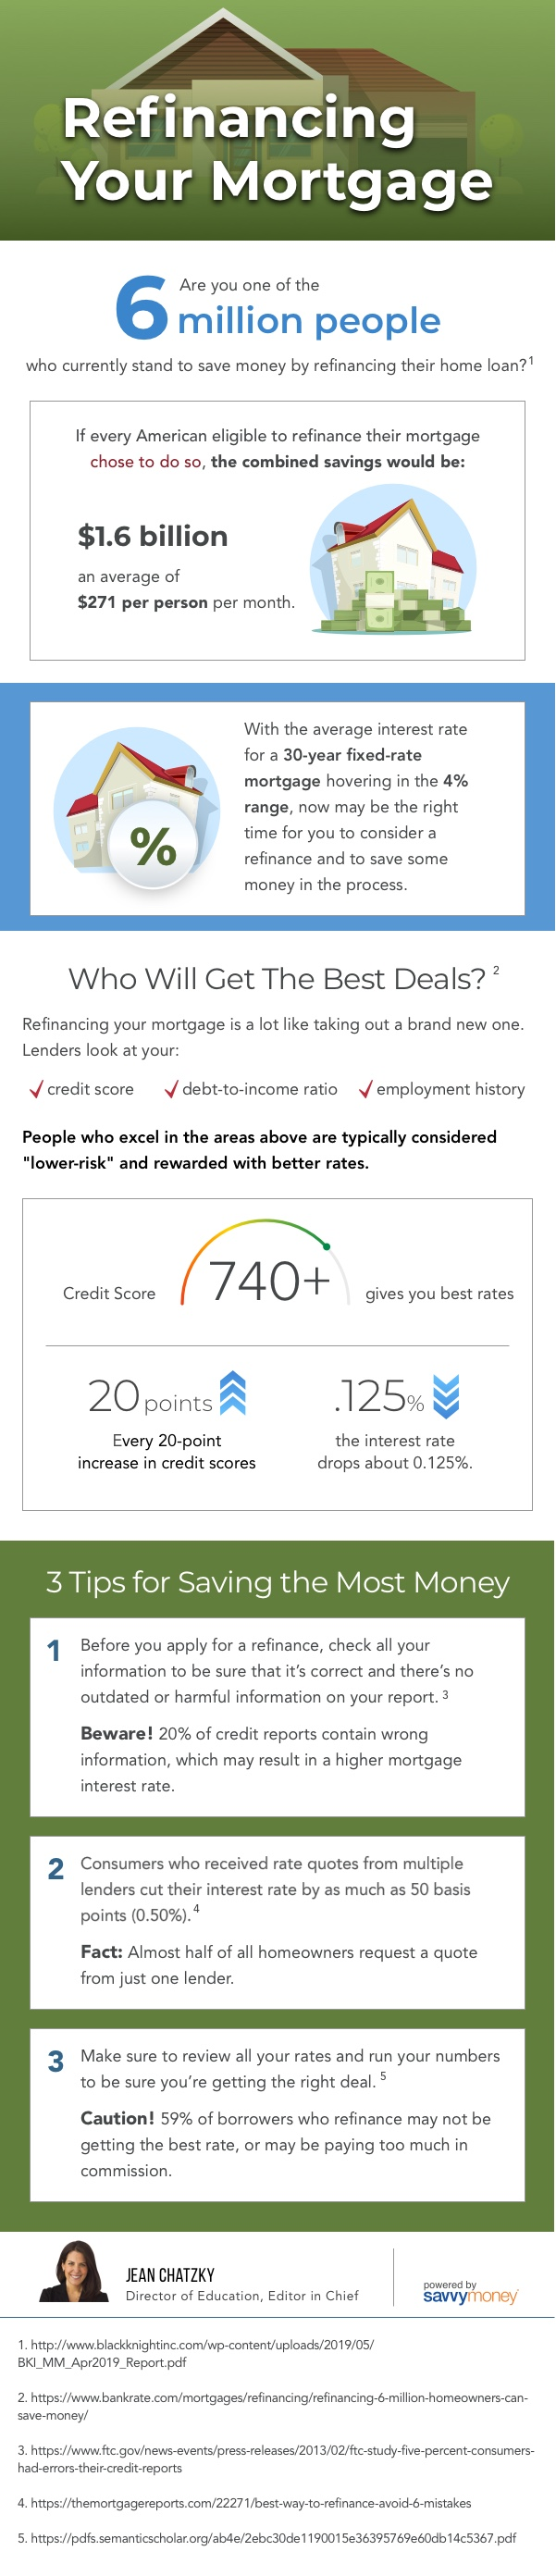 Refiancing Your Mortgage Infographic image